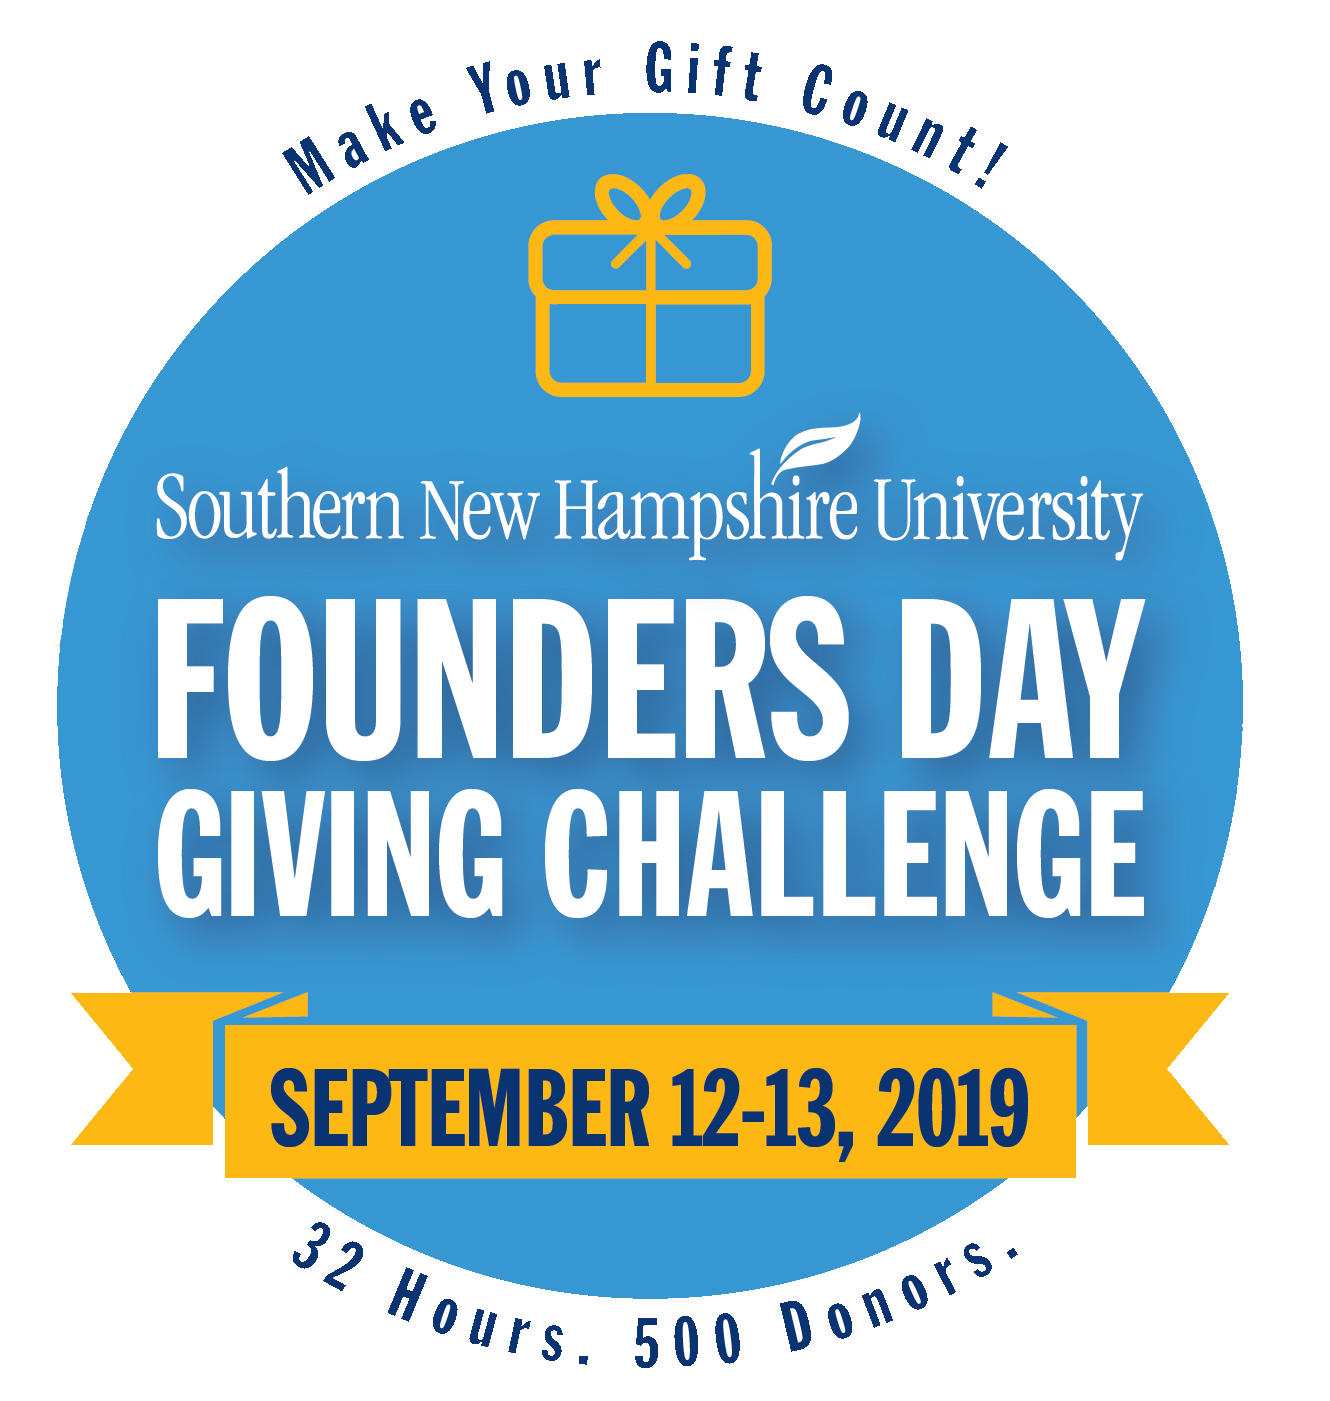 SNHU Founders Day Giving Challenge, September 12-13, 2019